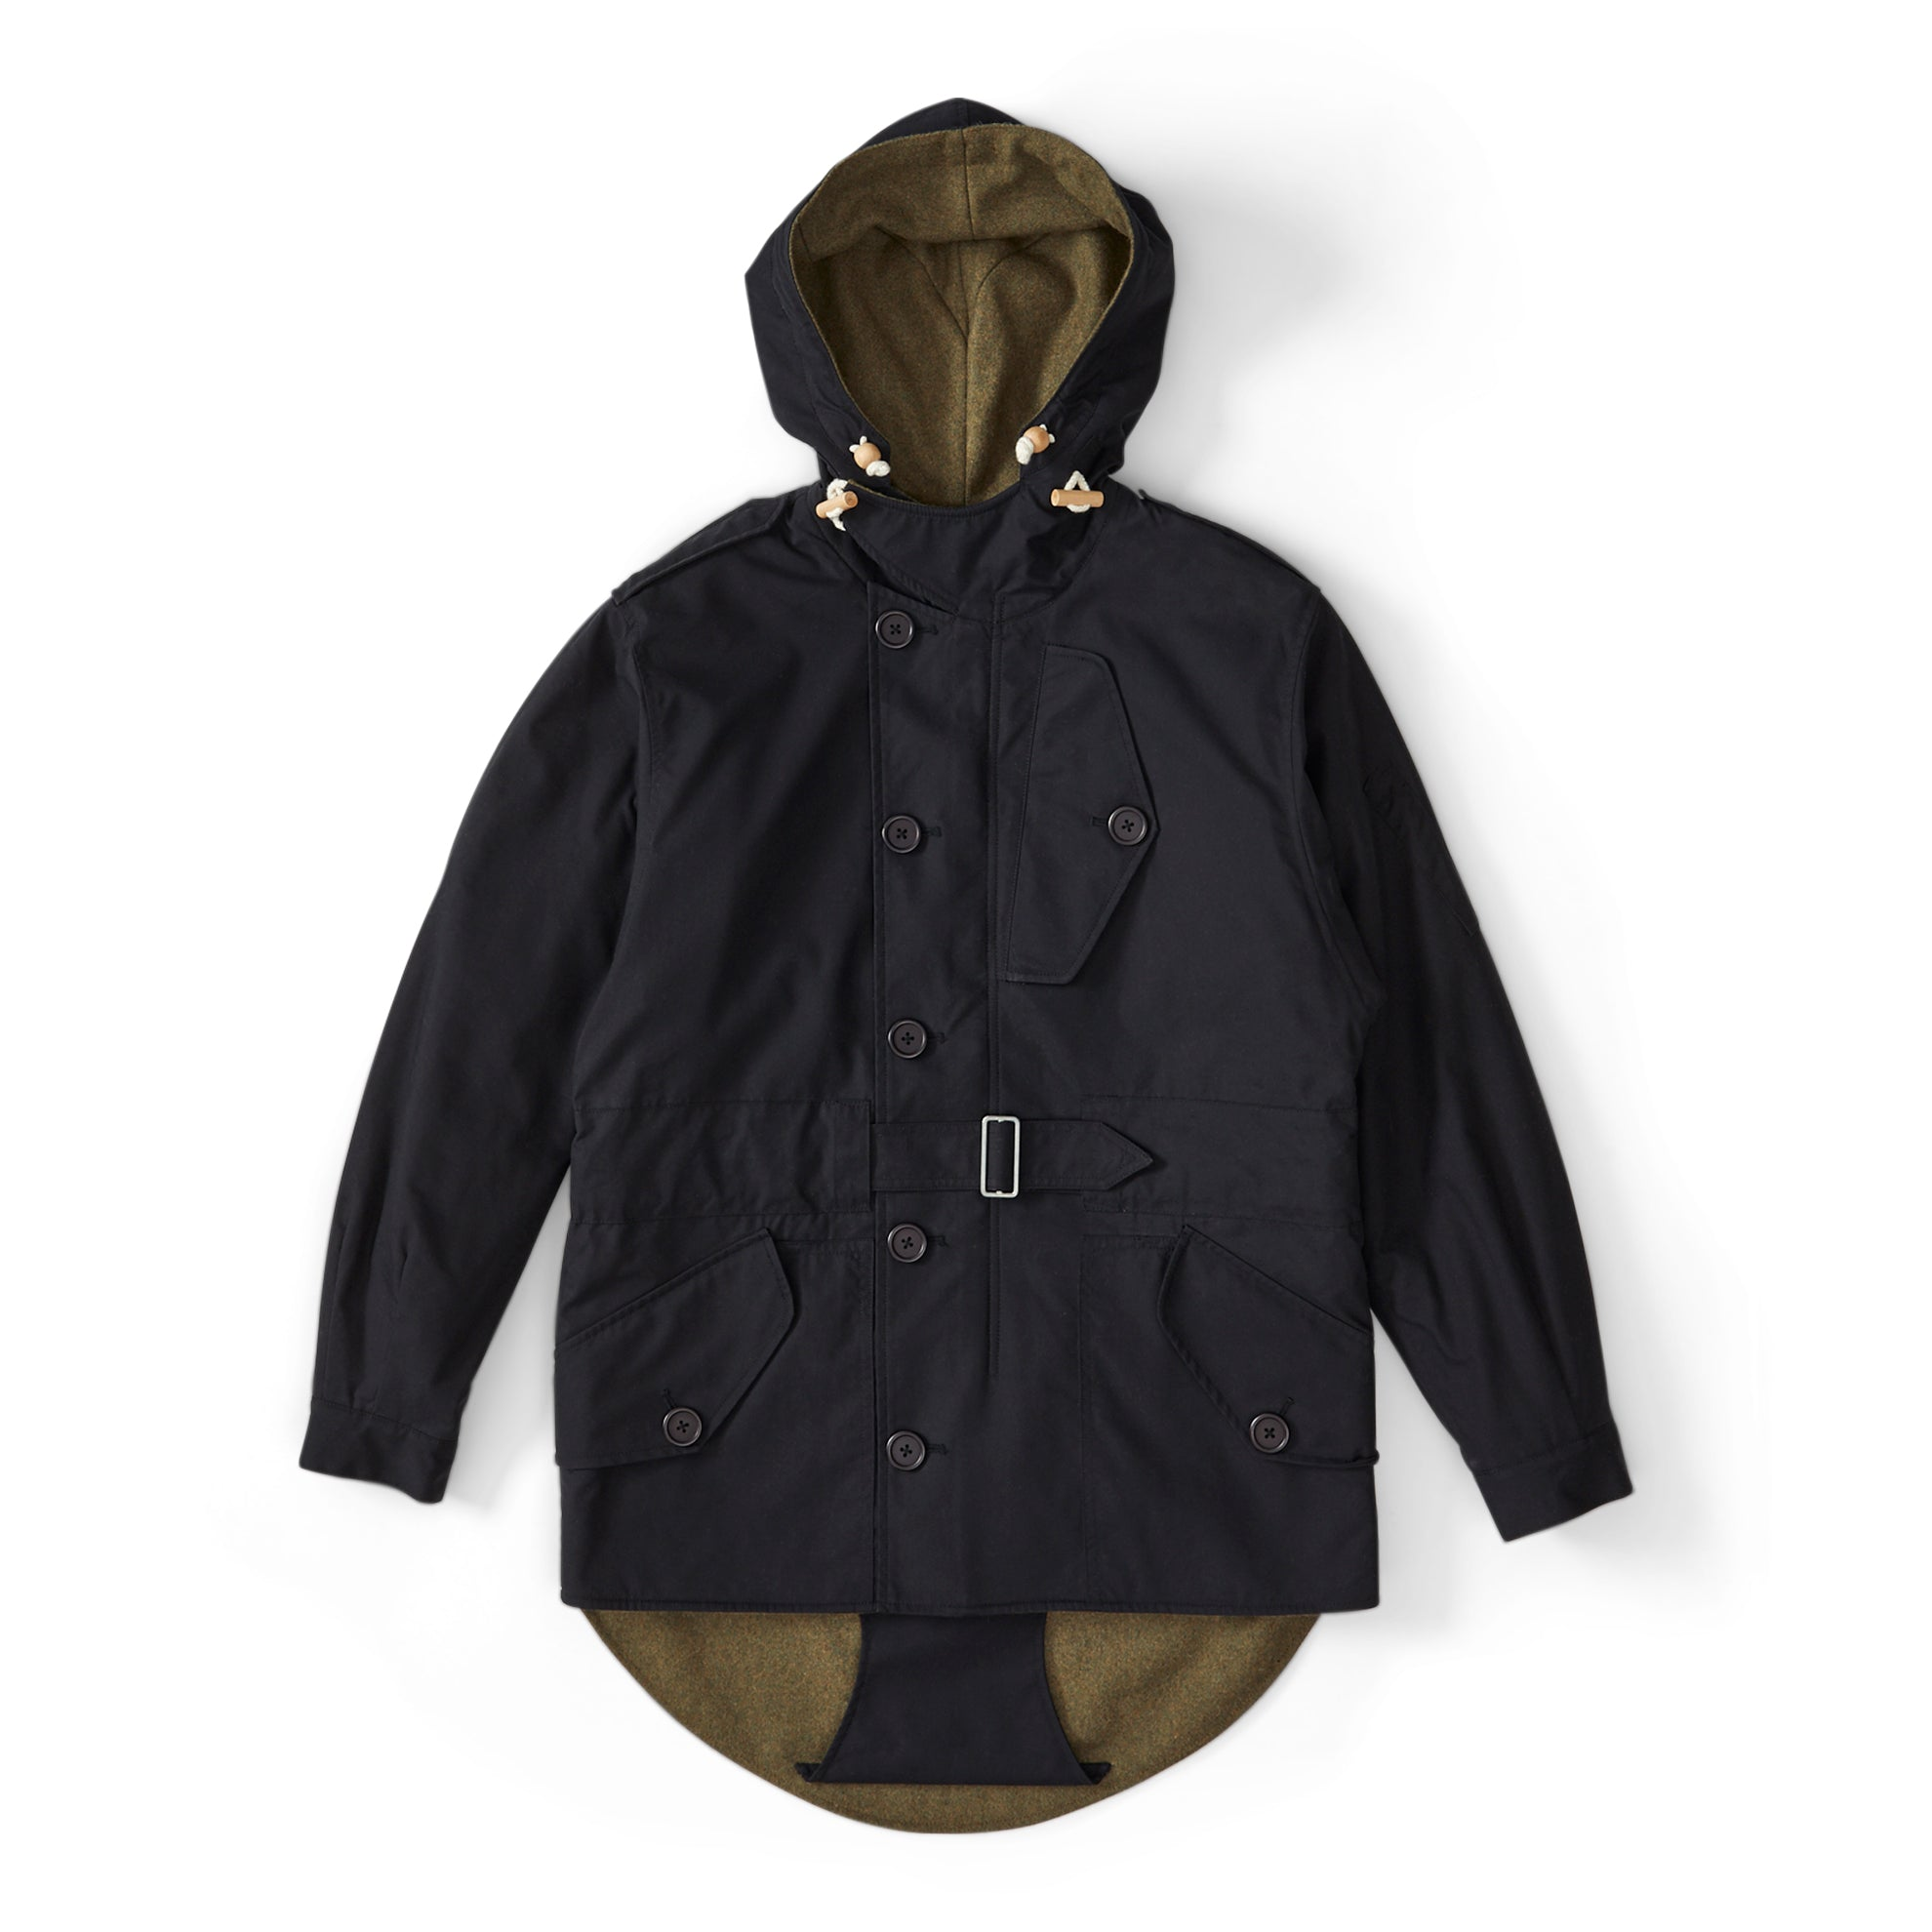 R.A.F. Mountain Rescue Parka